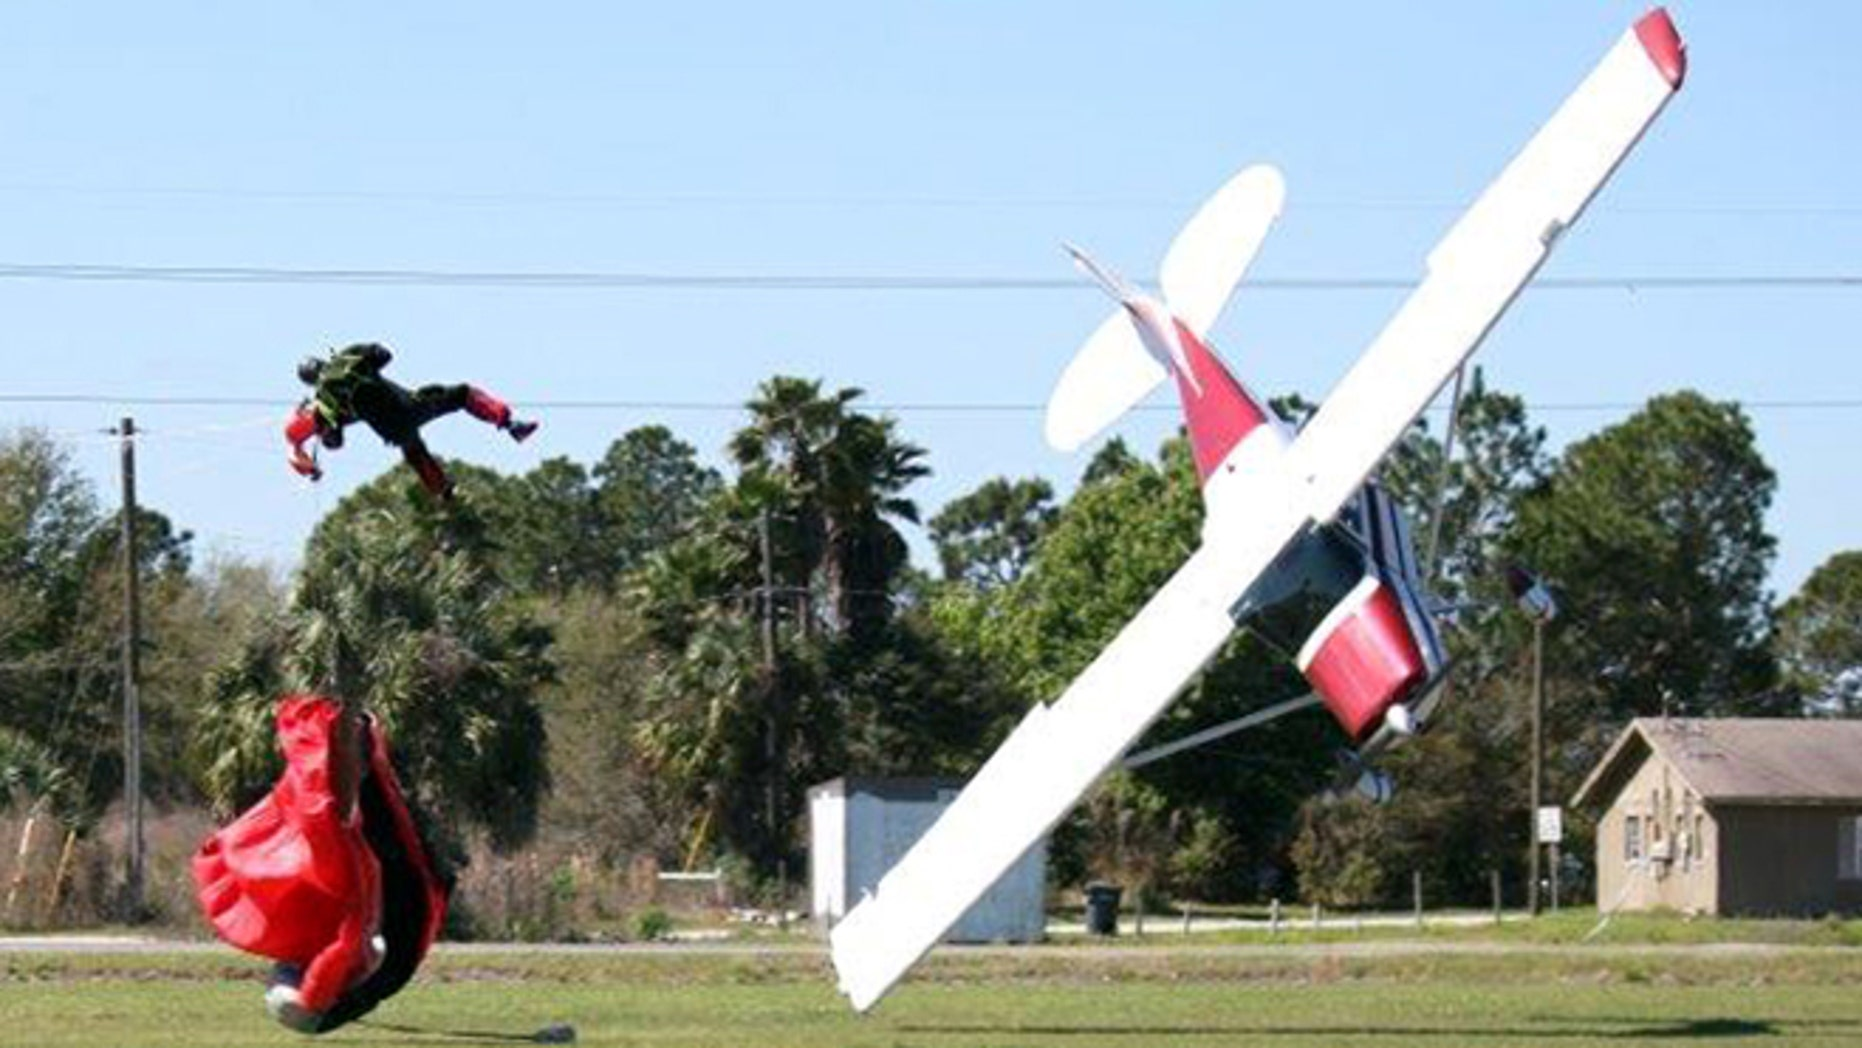 March 8, 2014: This photo released by the Polk County Sheriff's Office shows a plane nose-diving into the ground after getting tangled with a parachutist, left, at the South Lakeland Airport in Mulberry, Fla. Both the pilot and jumper hospitalized with minor injuries.